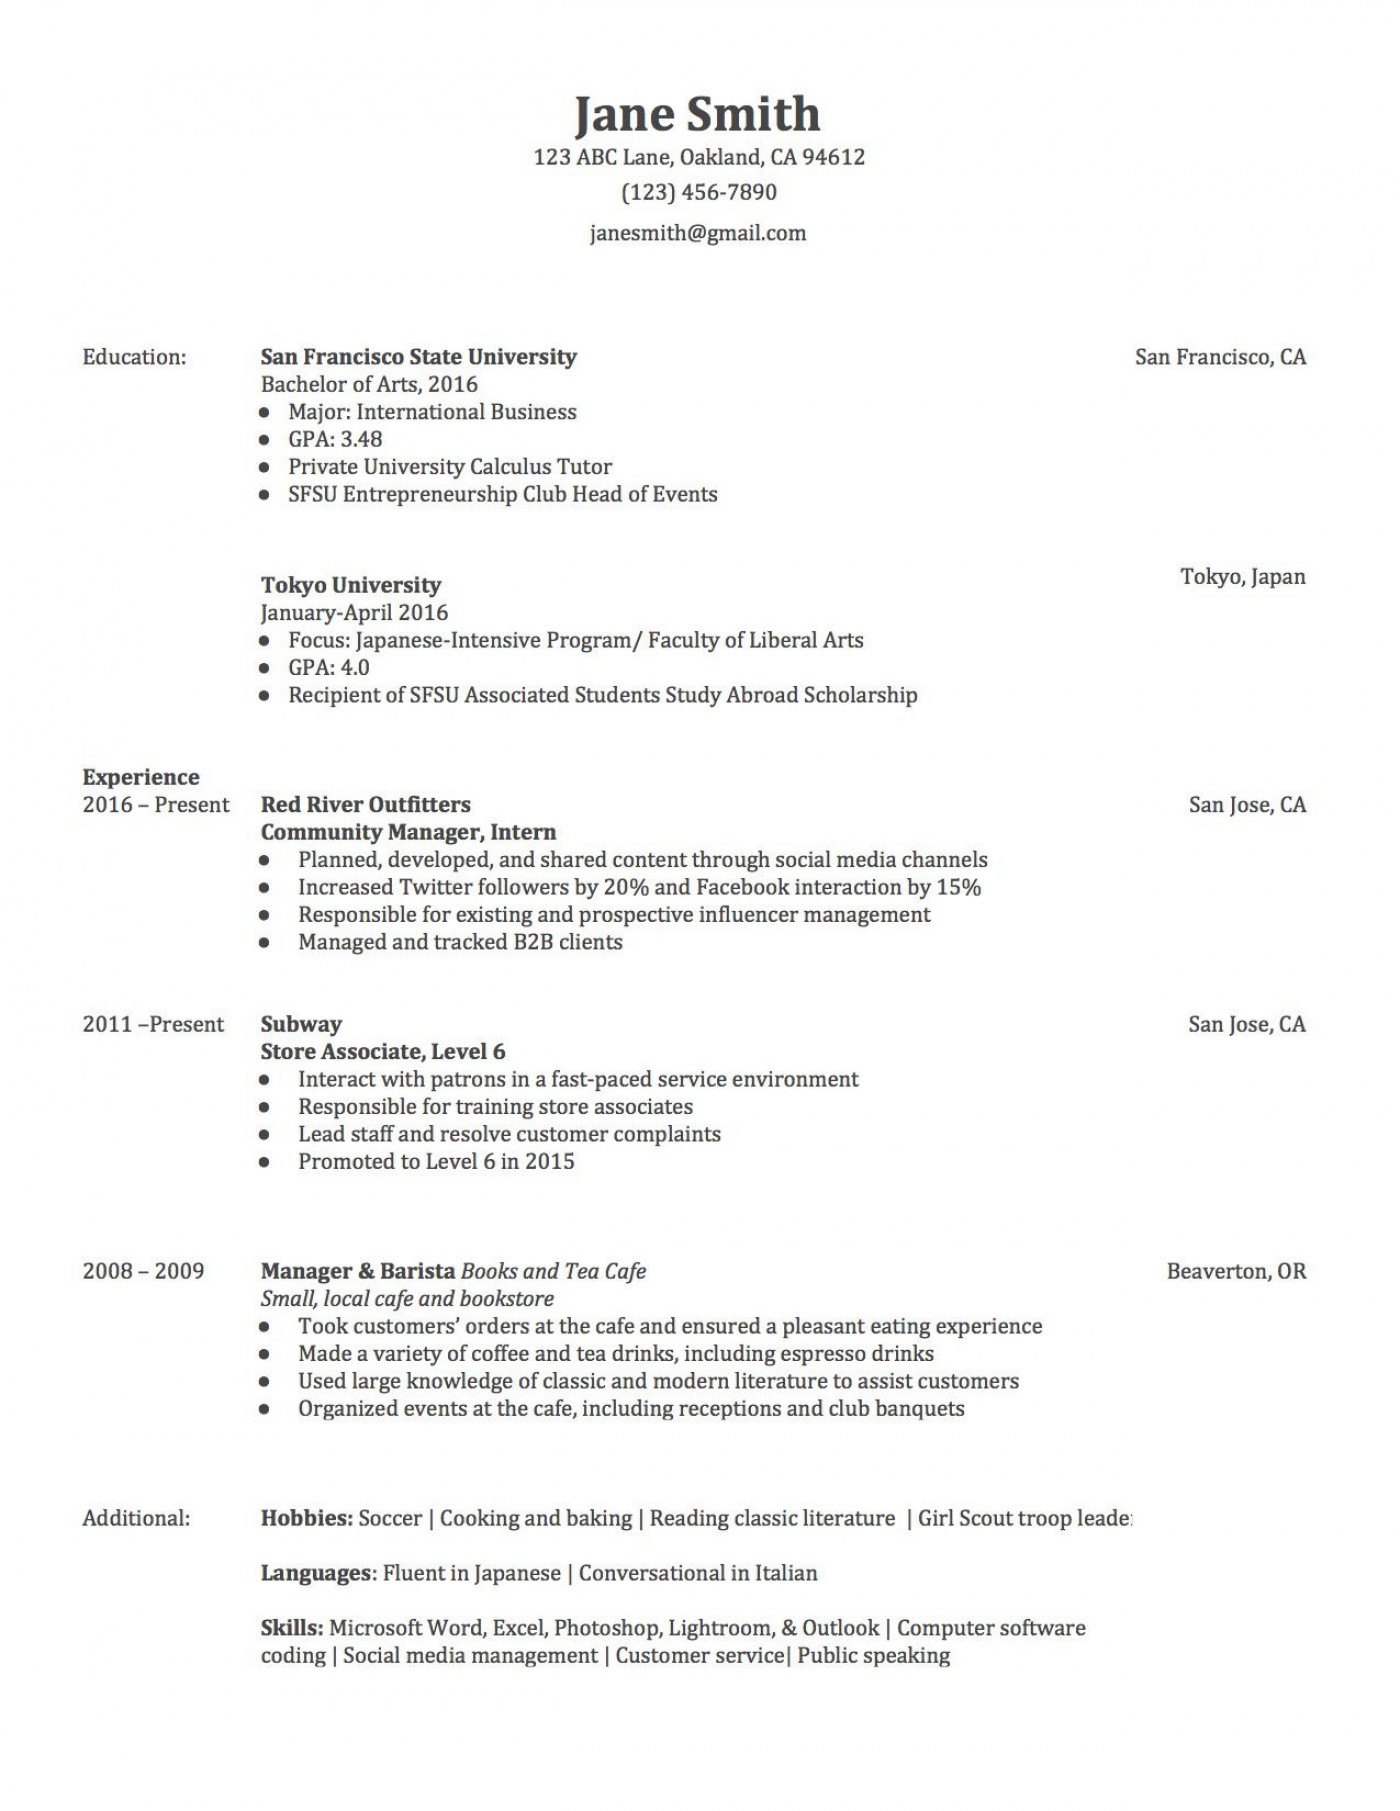 003 Wonderful Free Basic Resume Template Highest Clarity  Sample Download For Fresher Microsoft Word 20071400